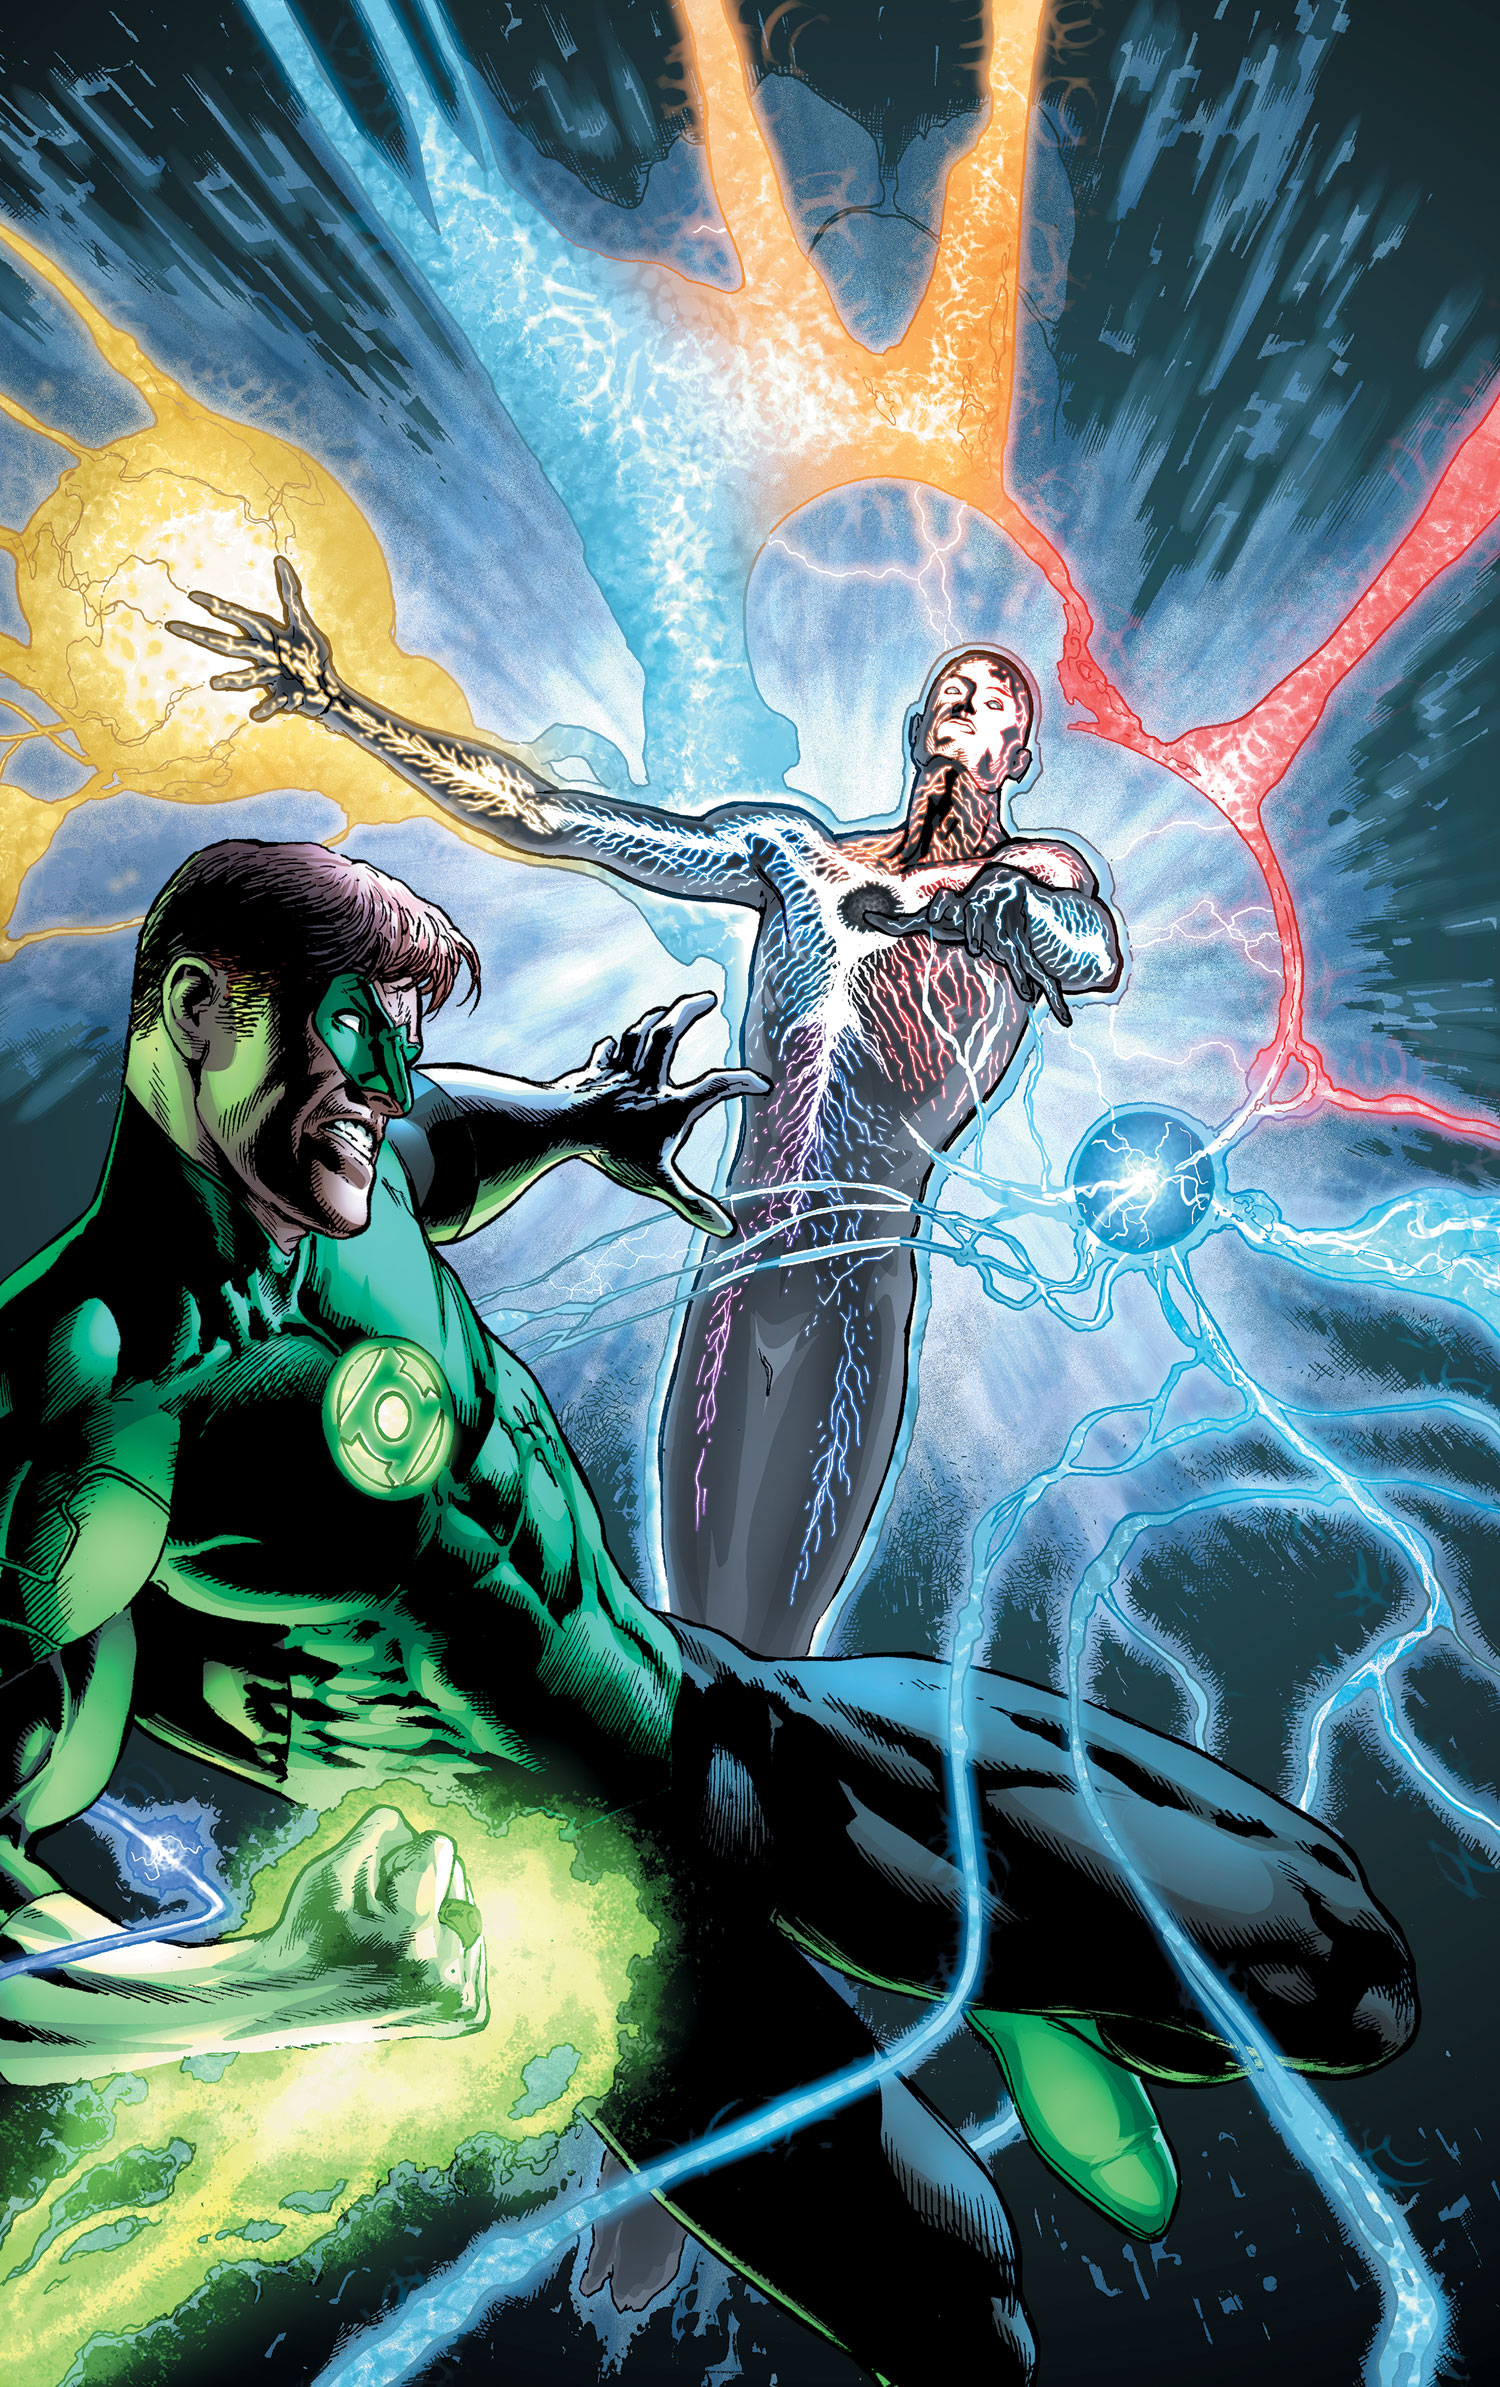 Sufficient Velocity, Welcome to the Lantern Corps | Sufficient Velocity